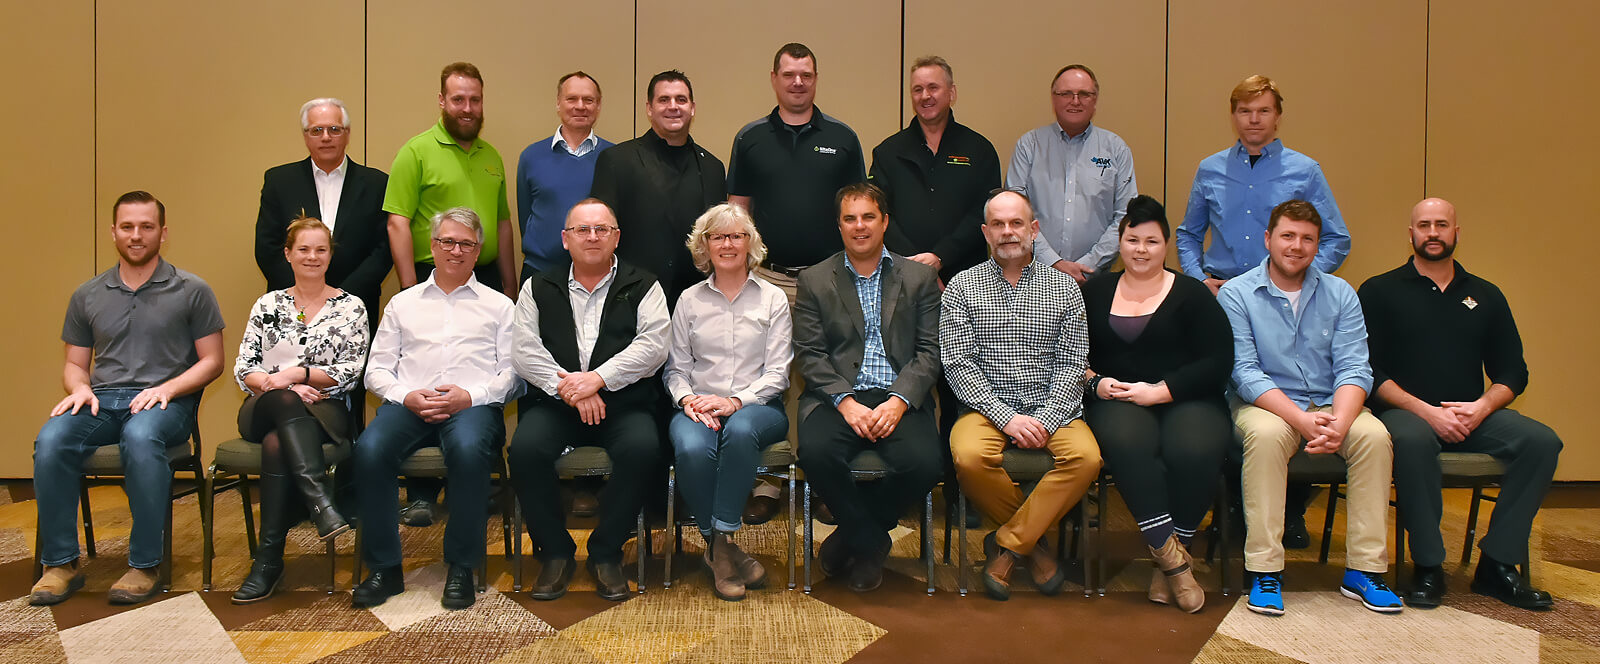 Landscape Ontario provincial board of directors group shot